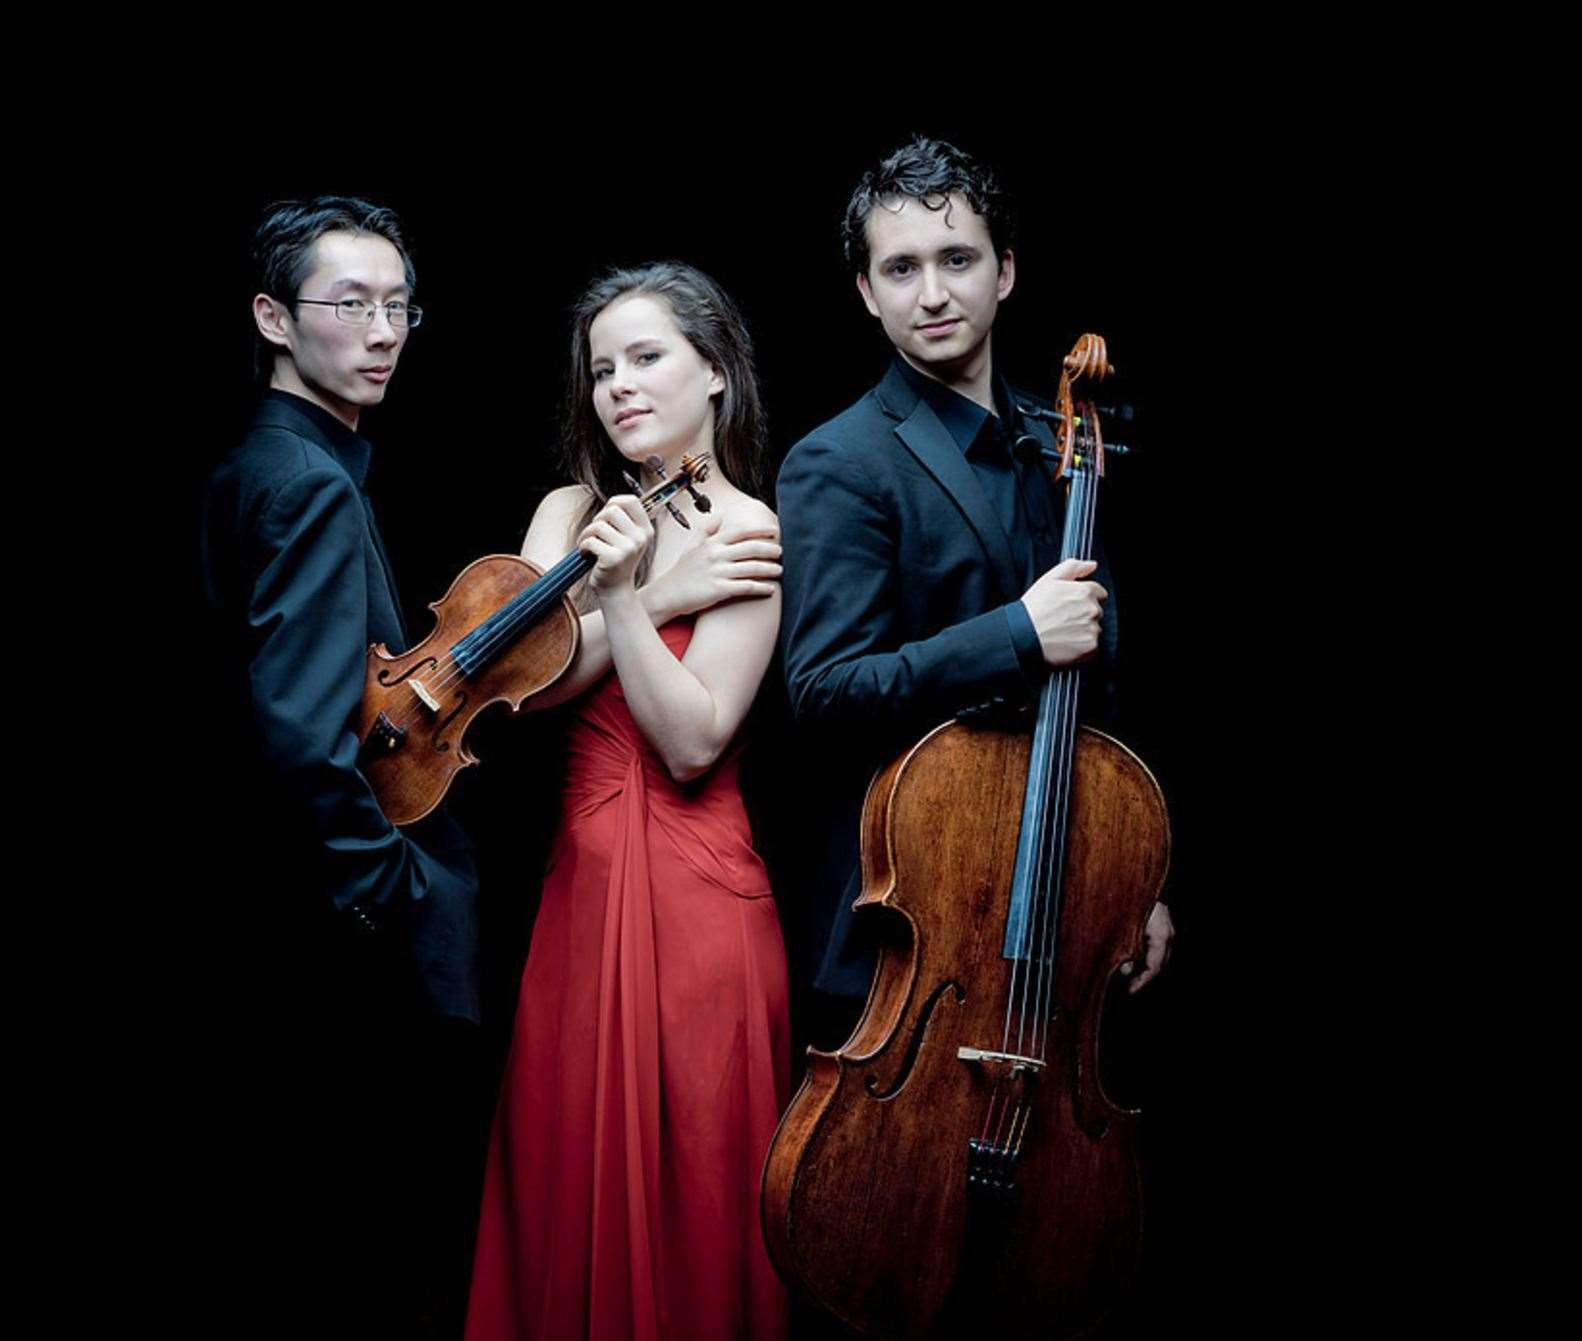 Mengjie Han (piano), Lea Hausmann (violin) and Samuel Shepherd (cello) are the Amatis Piano Trio.Photo by Marco Borggreve.